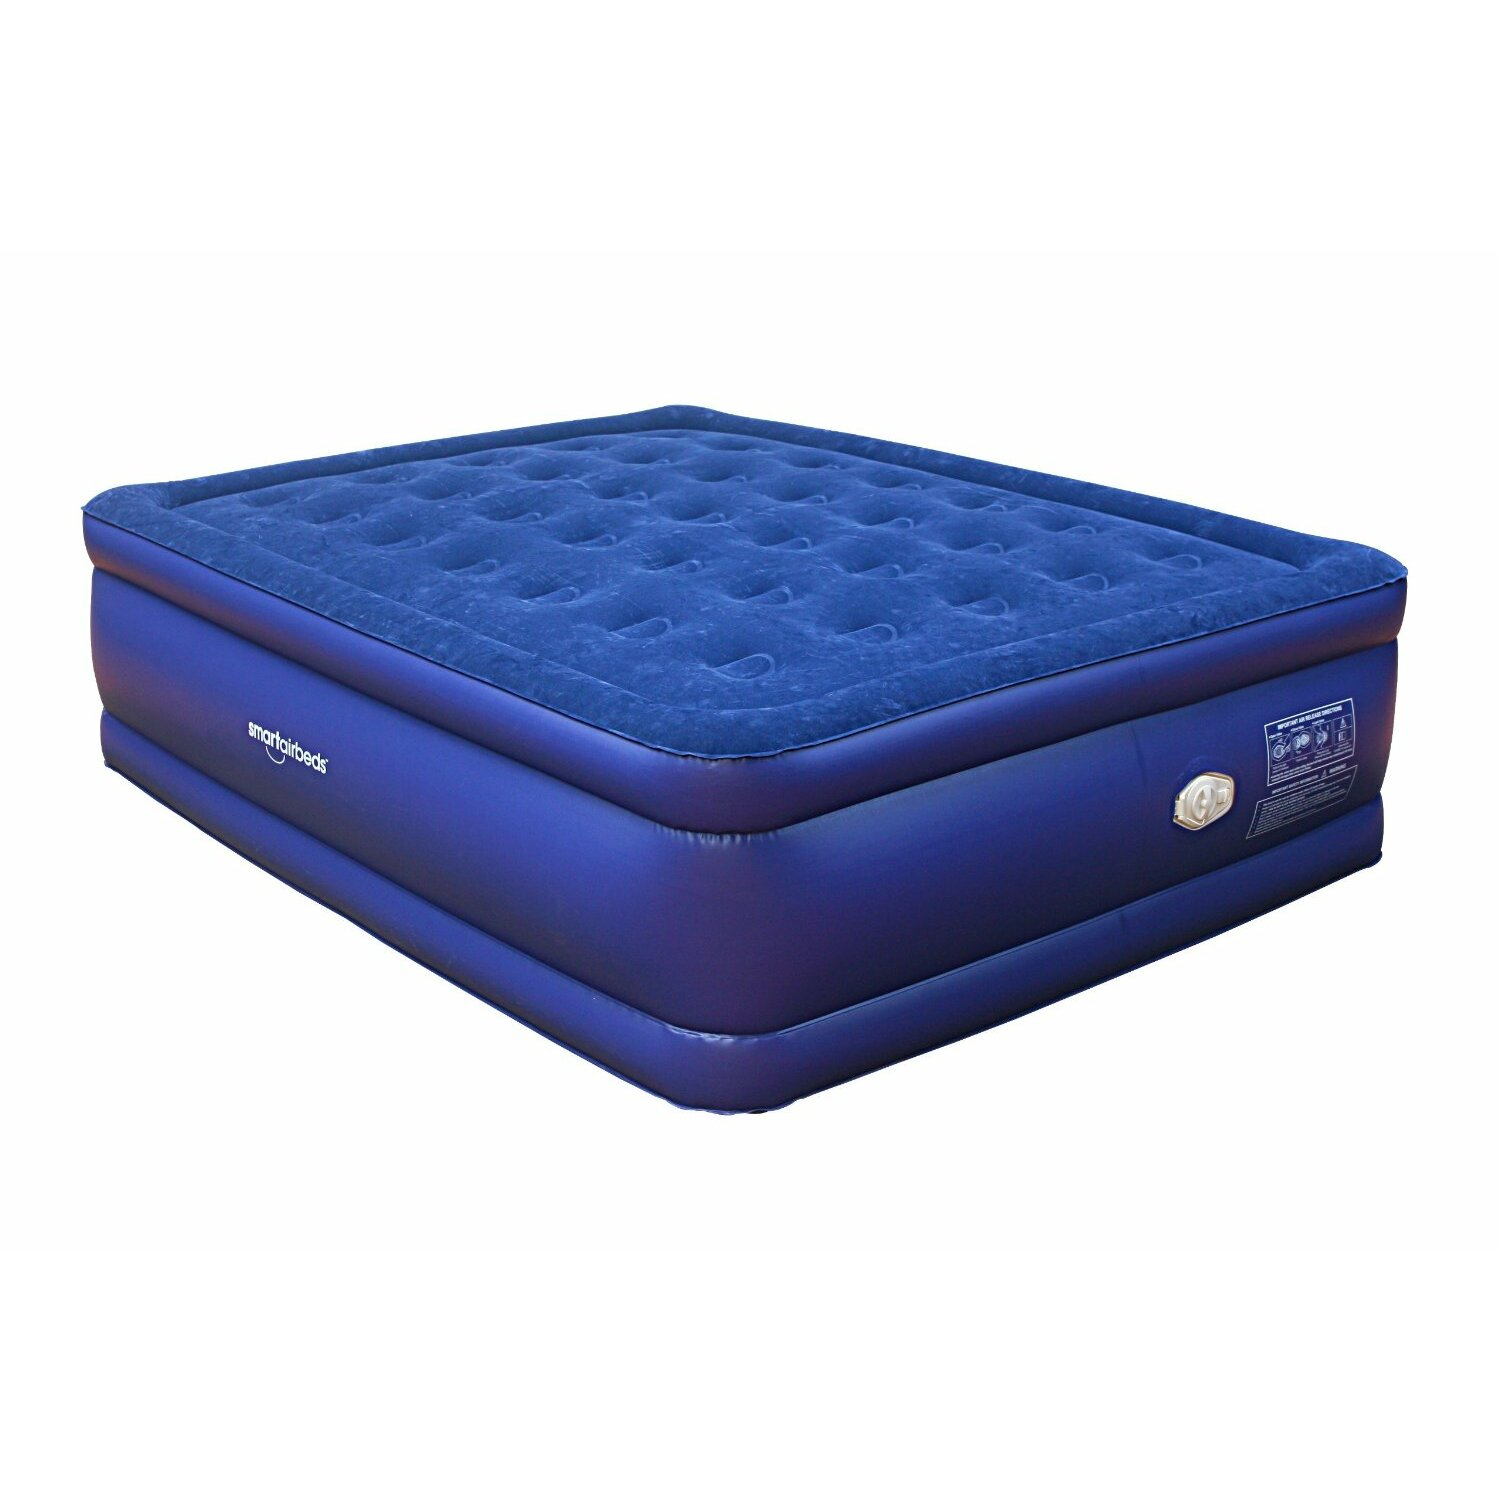 Queen Size Air Beds Reviews